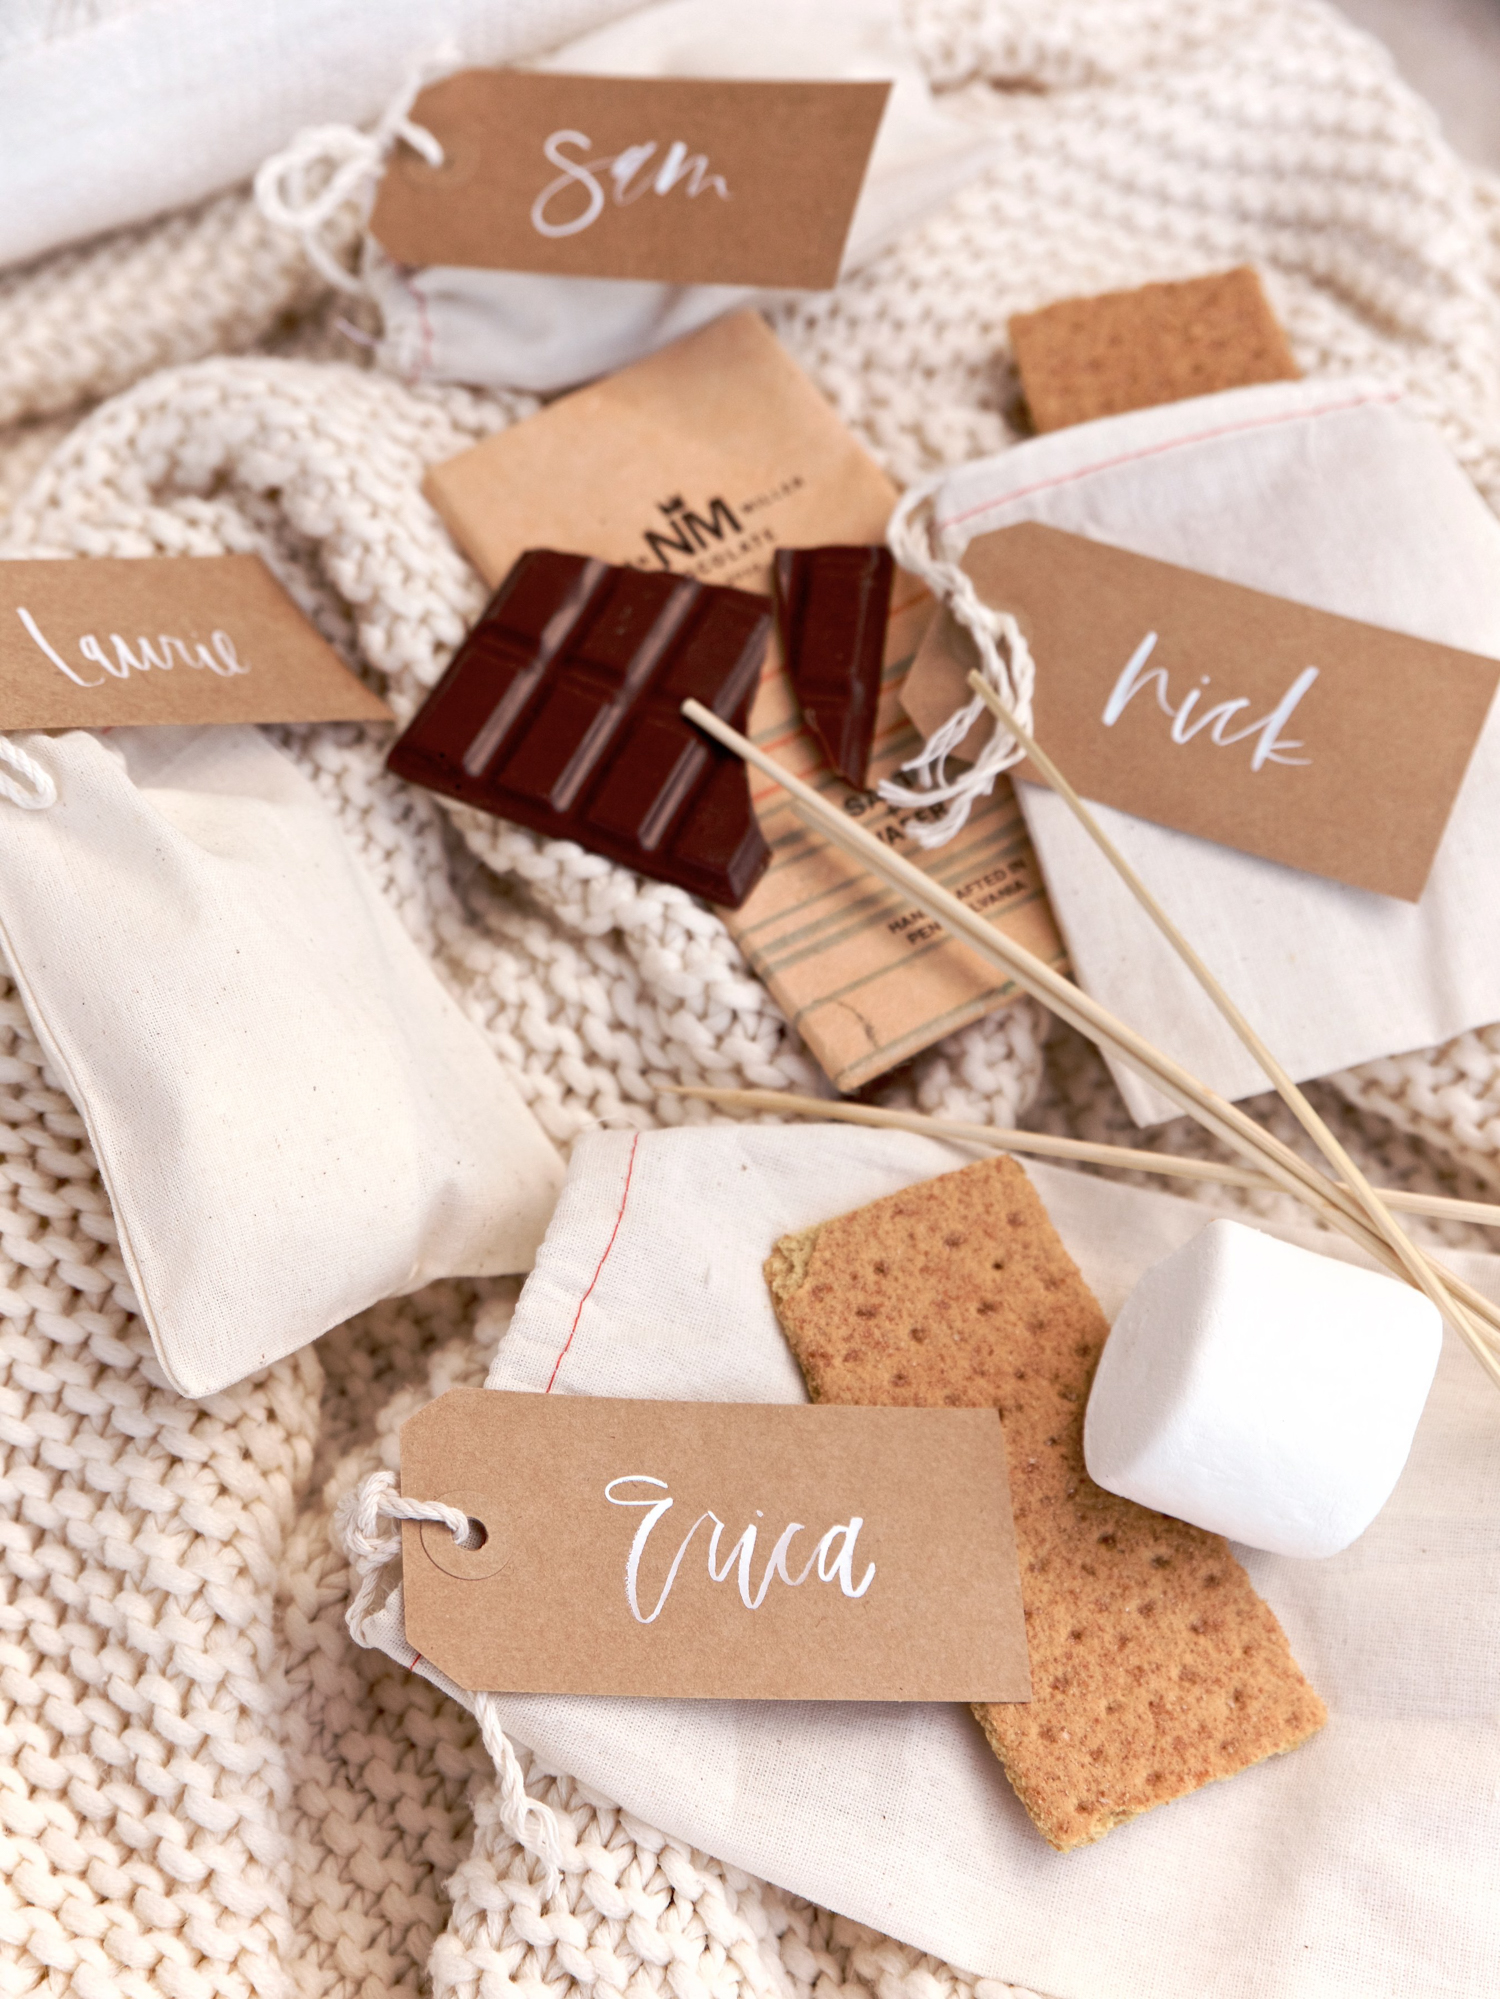 Elevated s'mores complete with gourmet chocolate and hand lettered tags | A Fabulous Fete